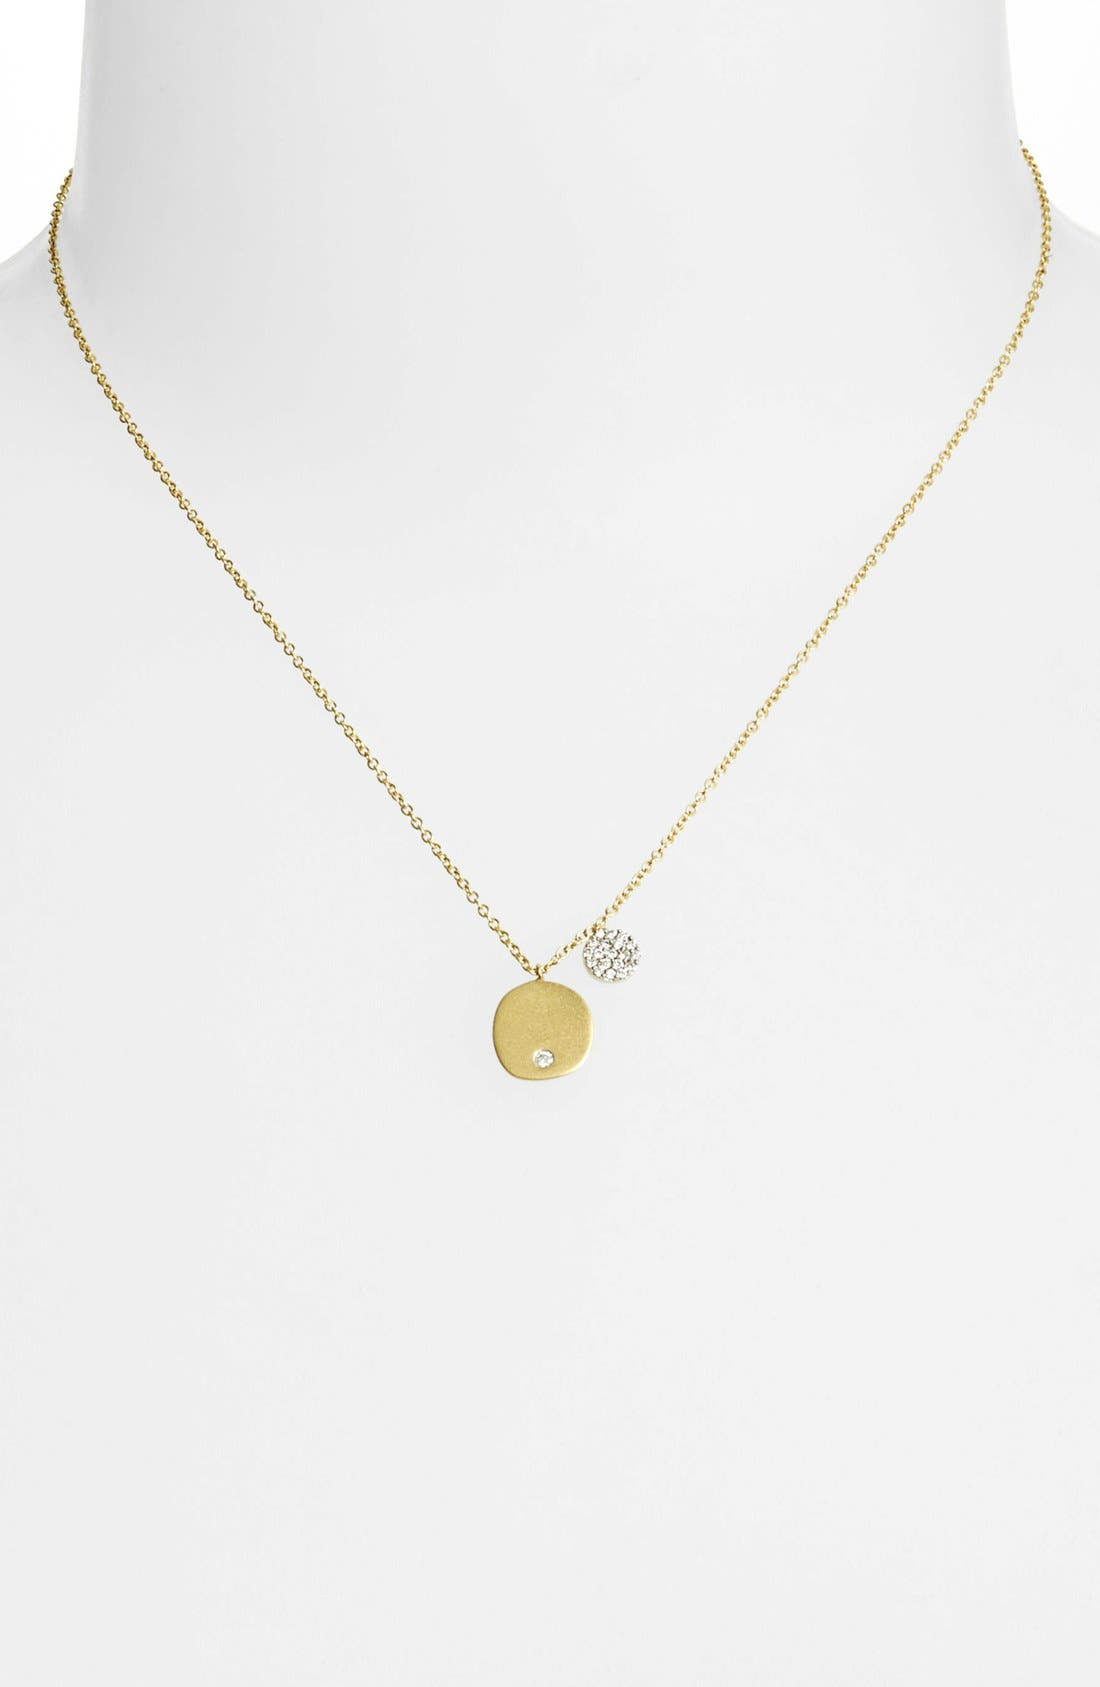 Charmed Diamond Pendant Necklace,                             Alternate thumbnail 2, color,                             Yellow Gold